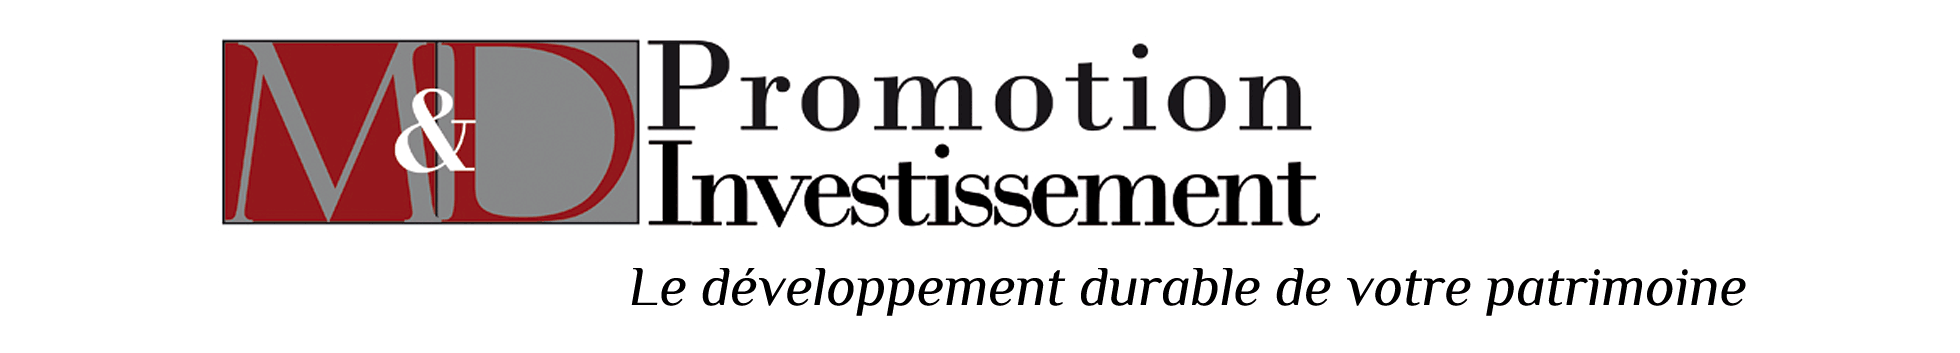 M&D Promotion Investissement